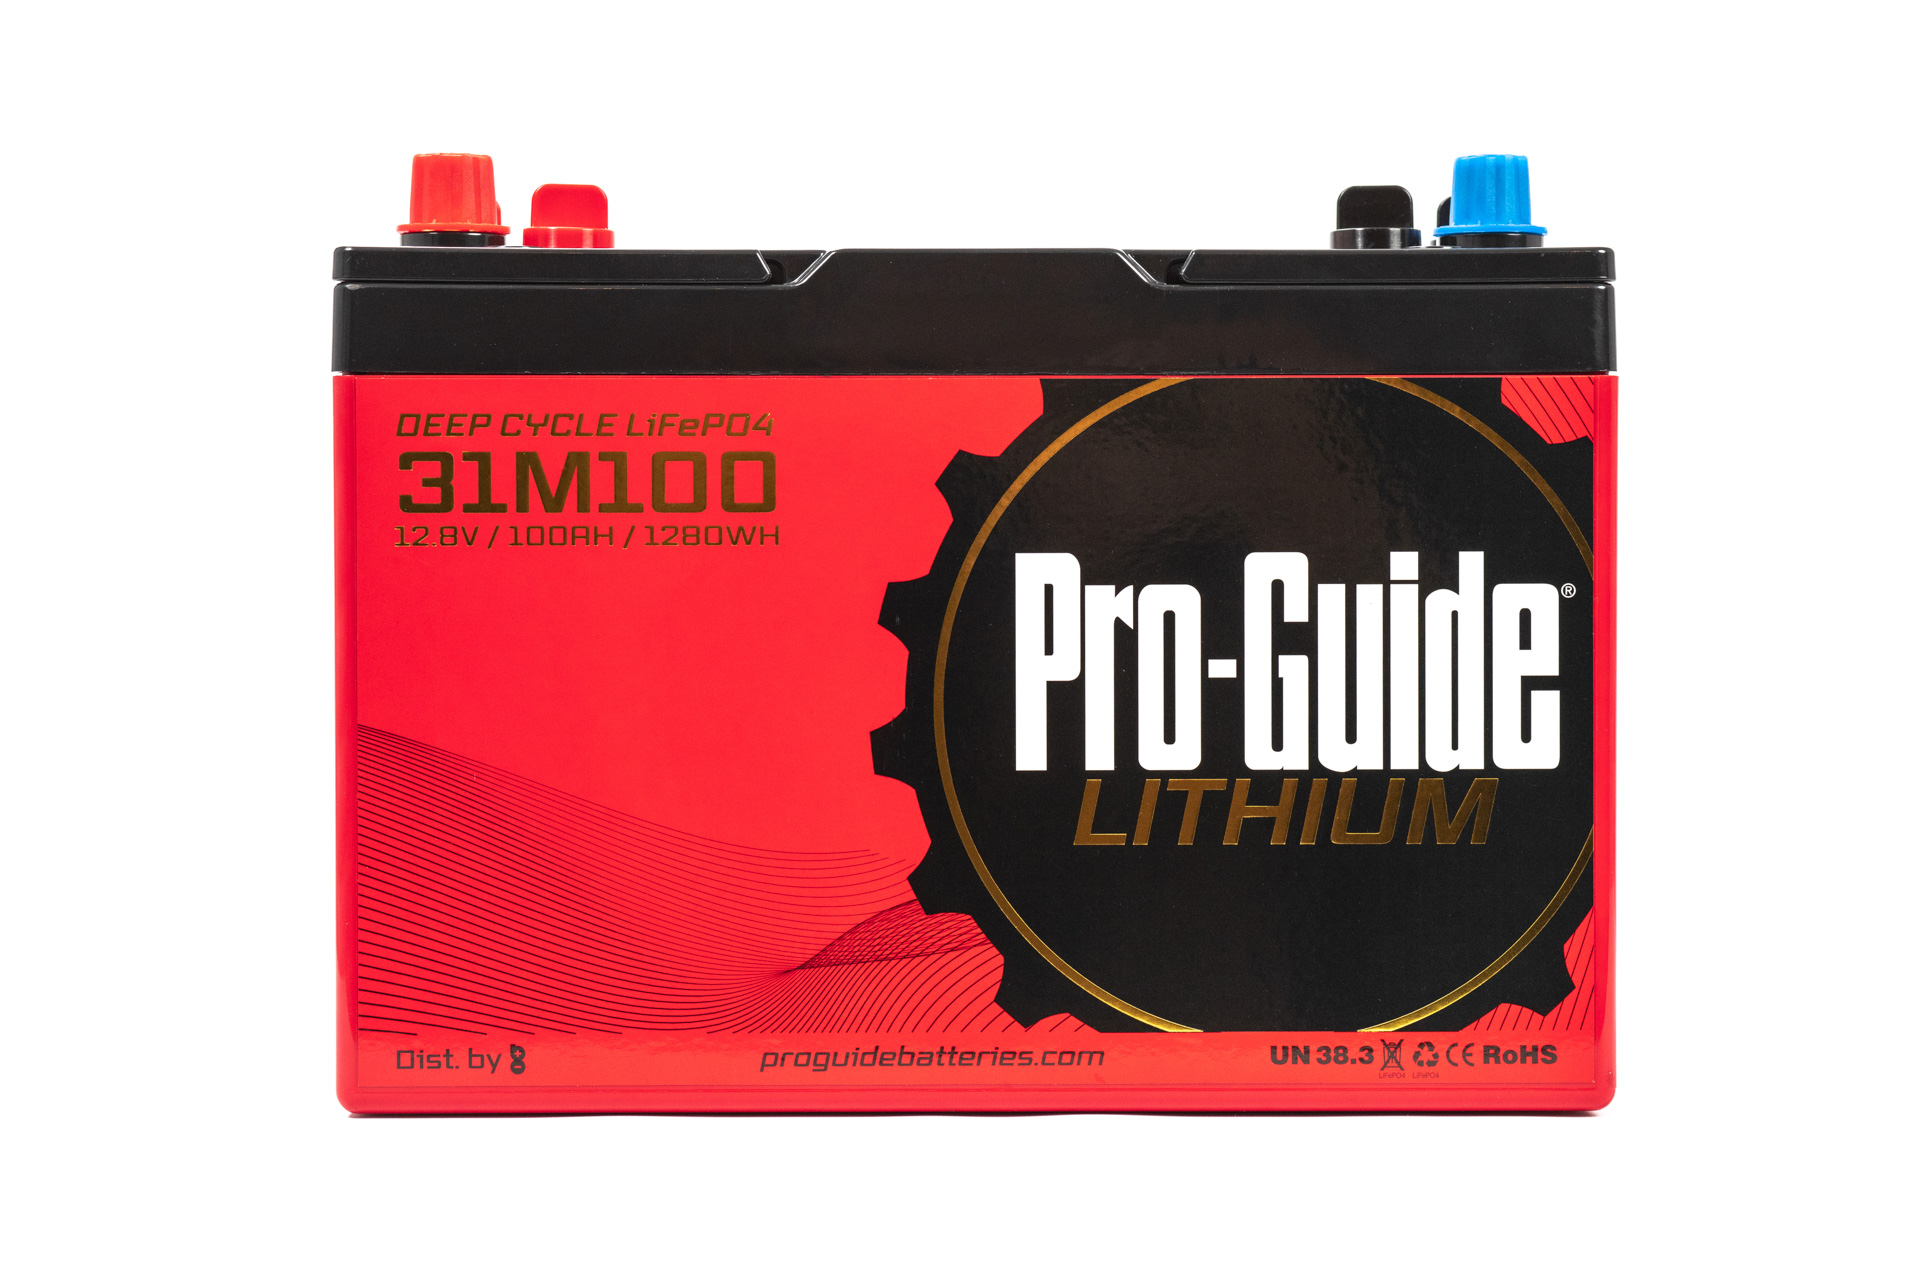 Pro Guide Lithium Batteries Commercial Photography